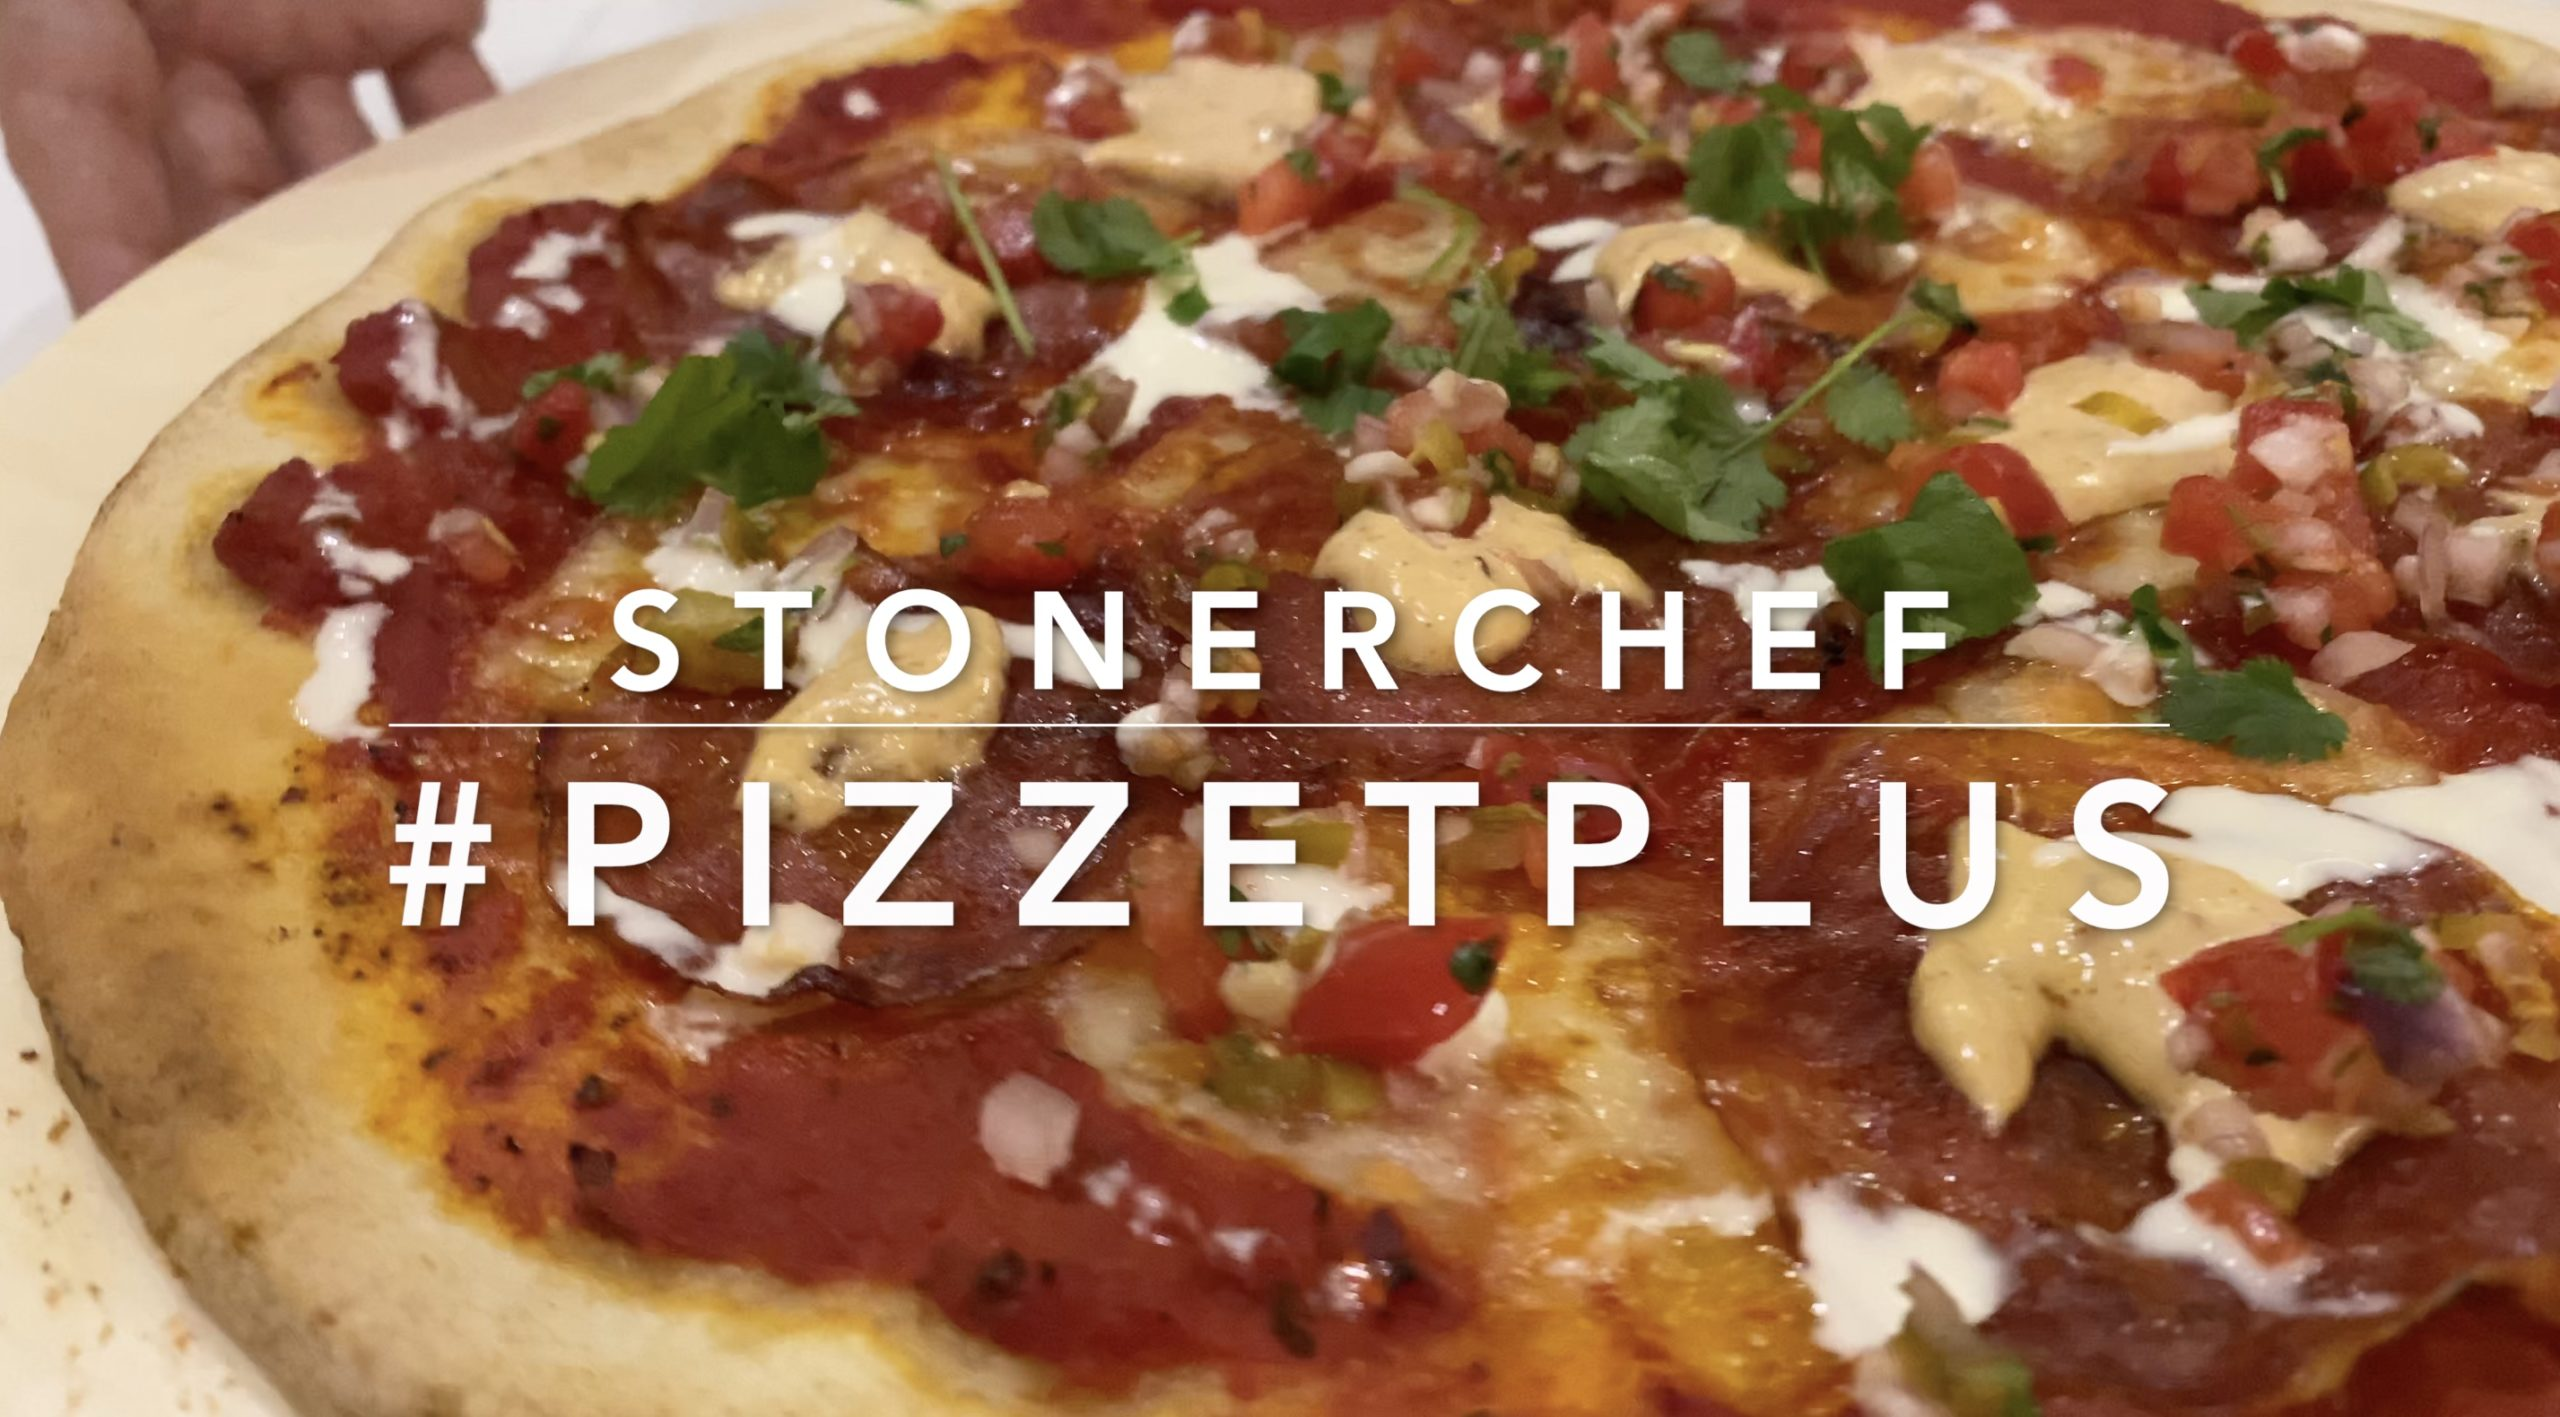 http://www.stonerchef.pl/wp-content/uploads/2020/01/pizzetplus-scaled.jpg